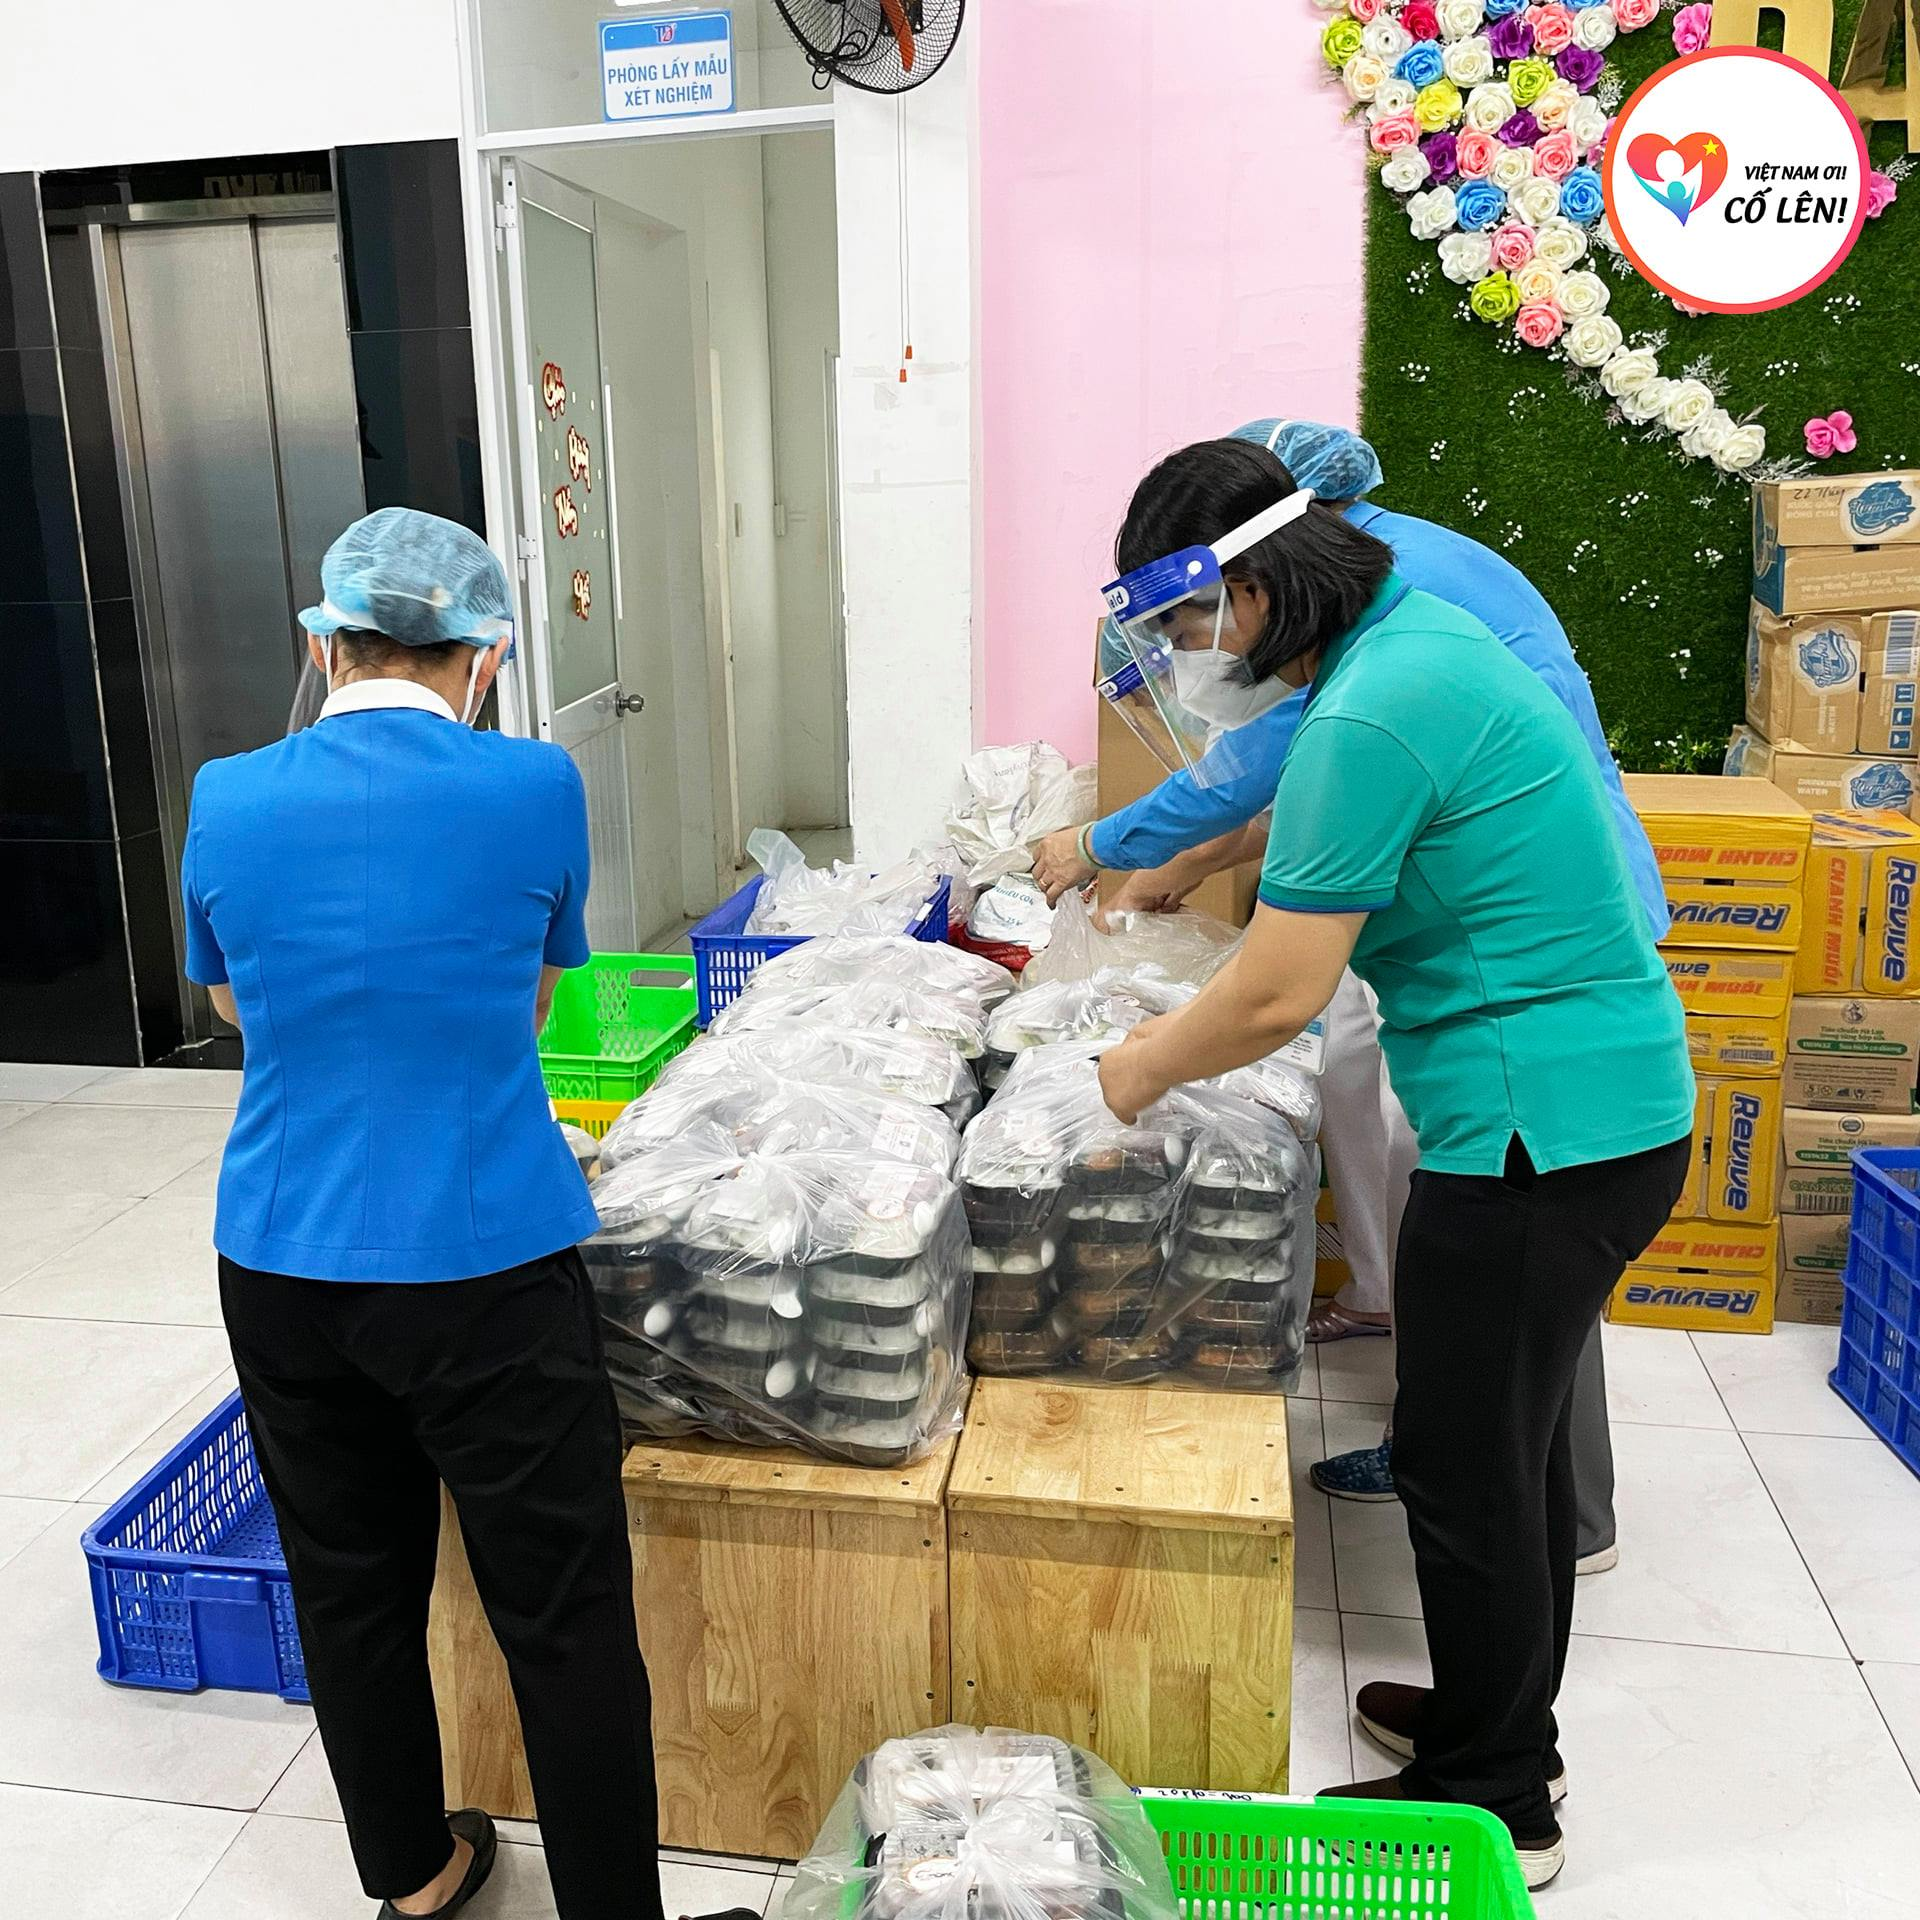 Packs of meals are ready to be carried to the unprivileged communities in Ho Chi Minh City. Photo: VNOCL